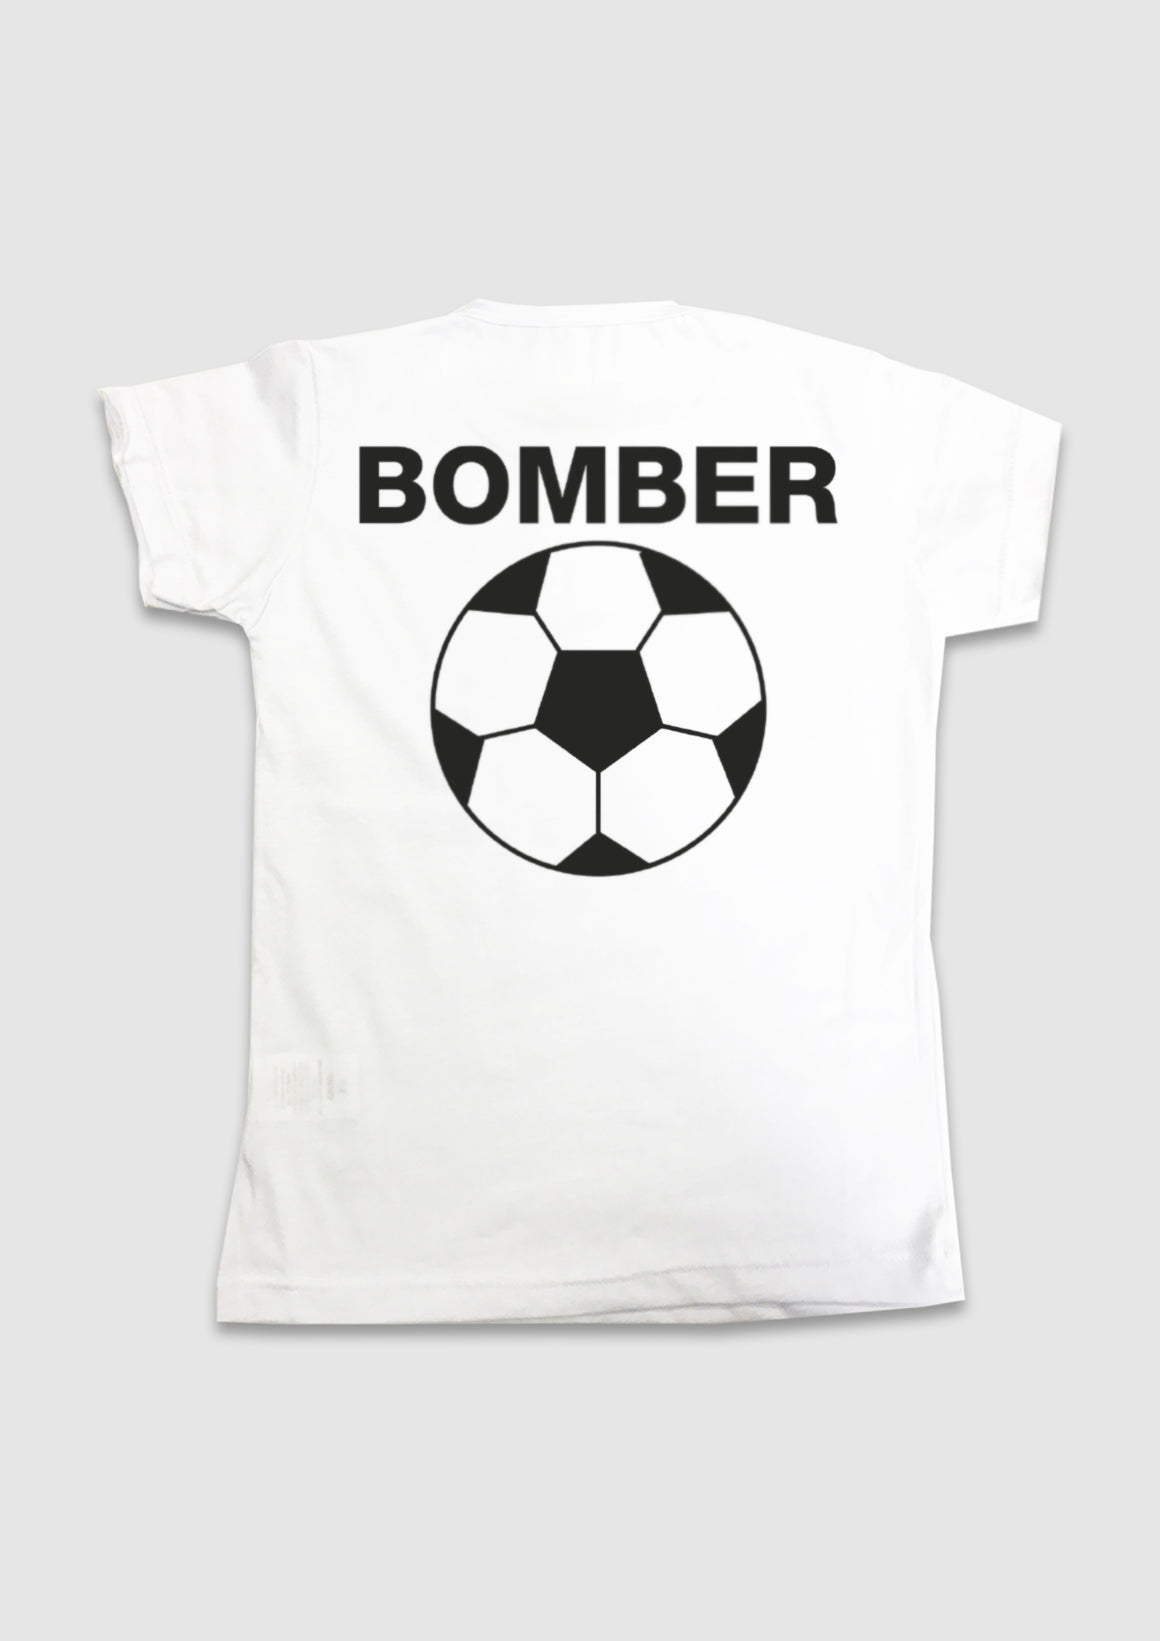 Bomber by LOL POP® BAMBINO